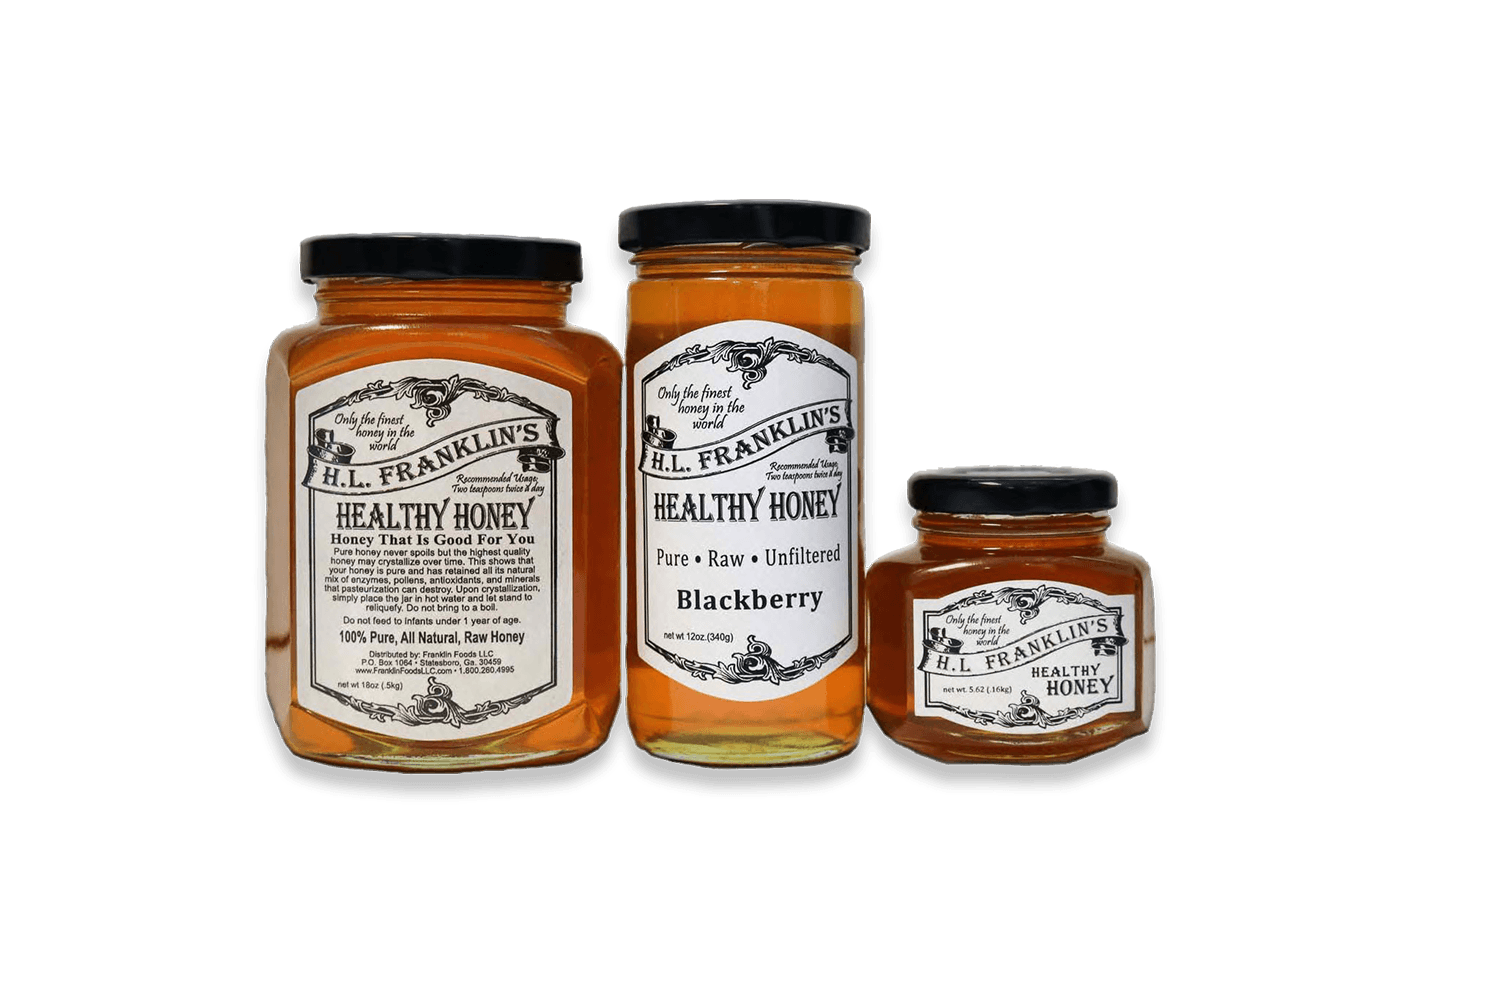 Honey Jars Archives - H L  FRANKLIN'S HEALTHY HONEY